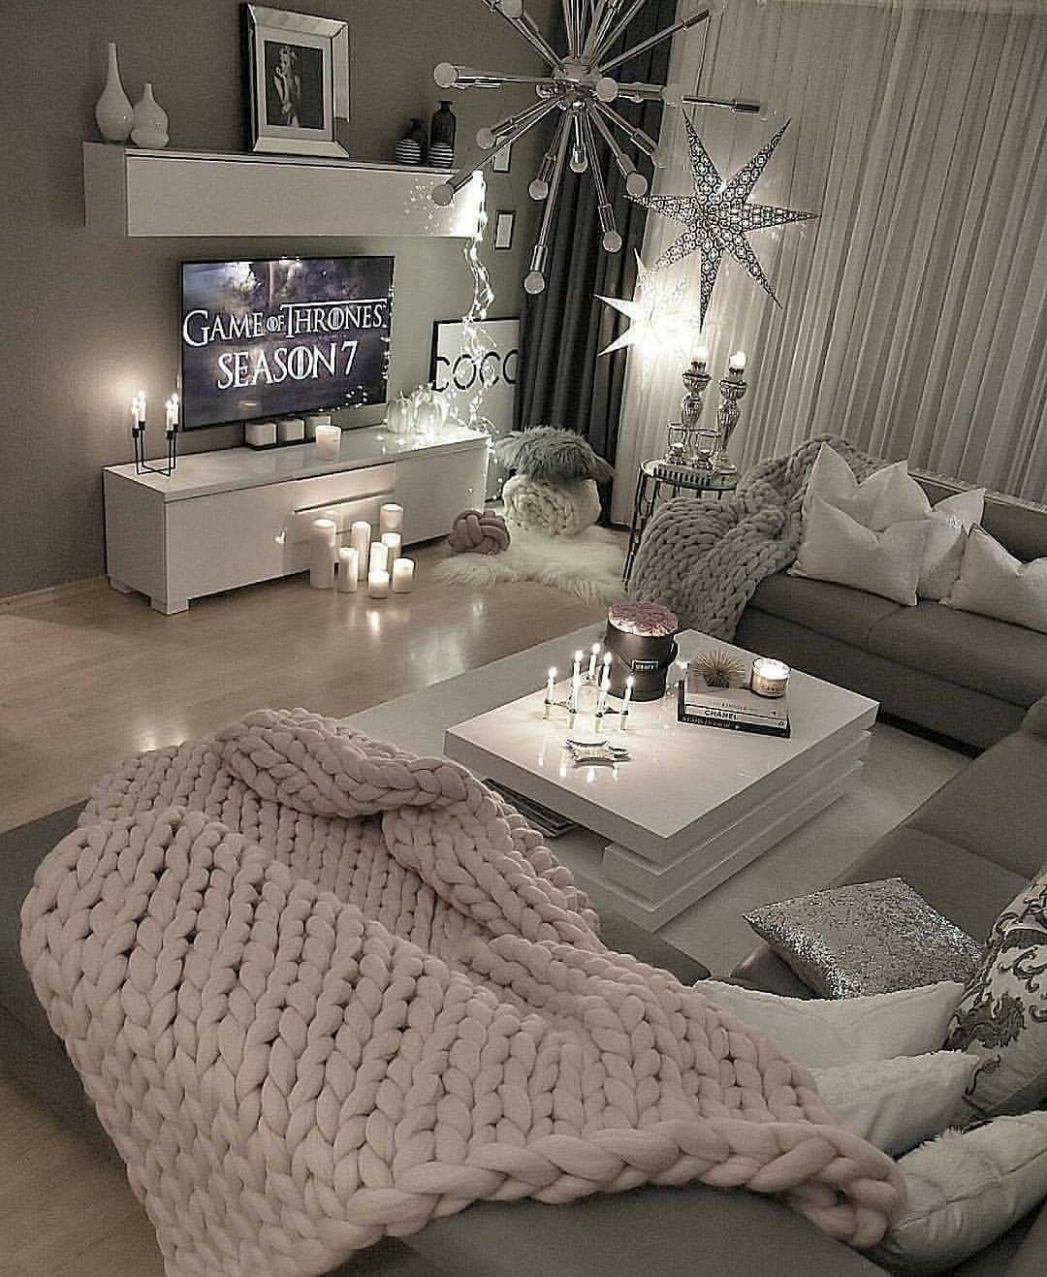 What a fun and cozy living room. ##LivingRoom | Home, Apartment ..